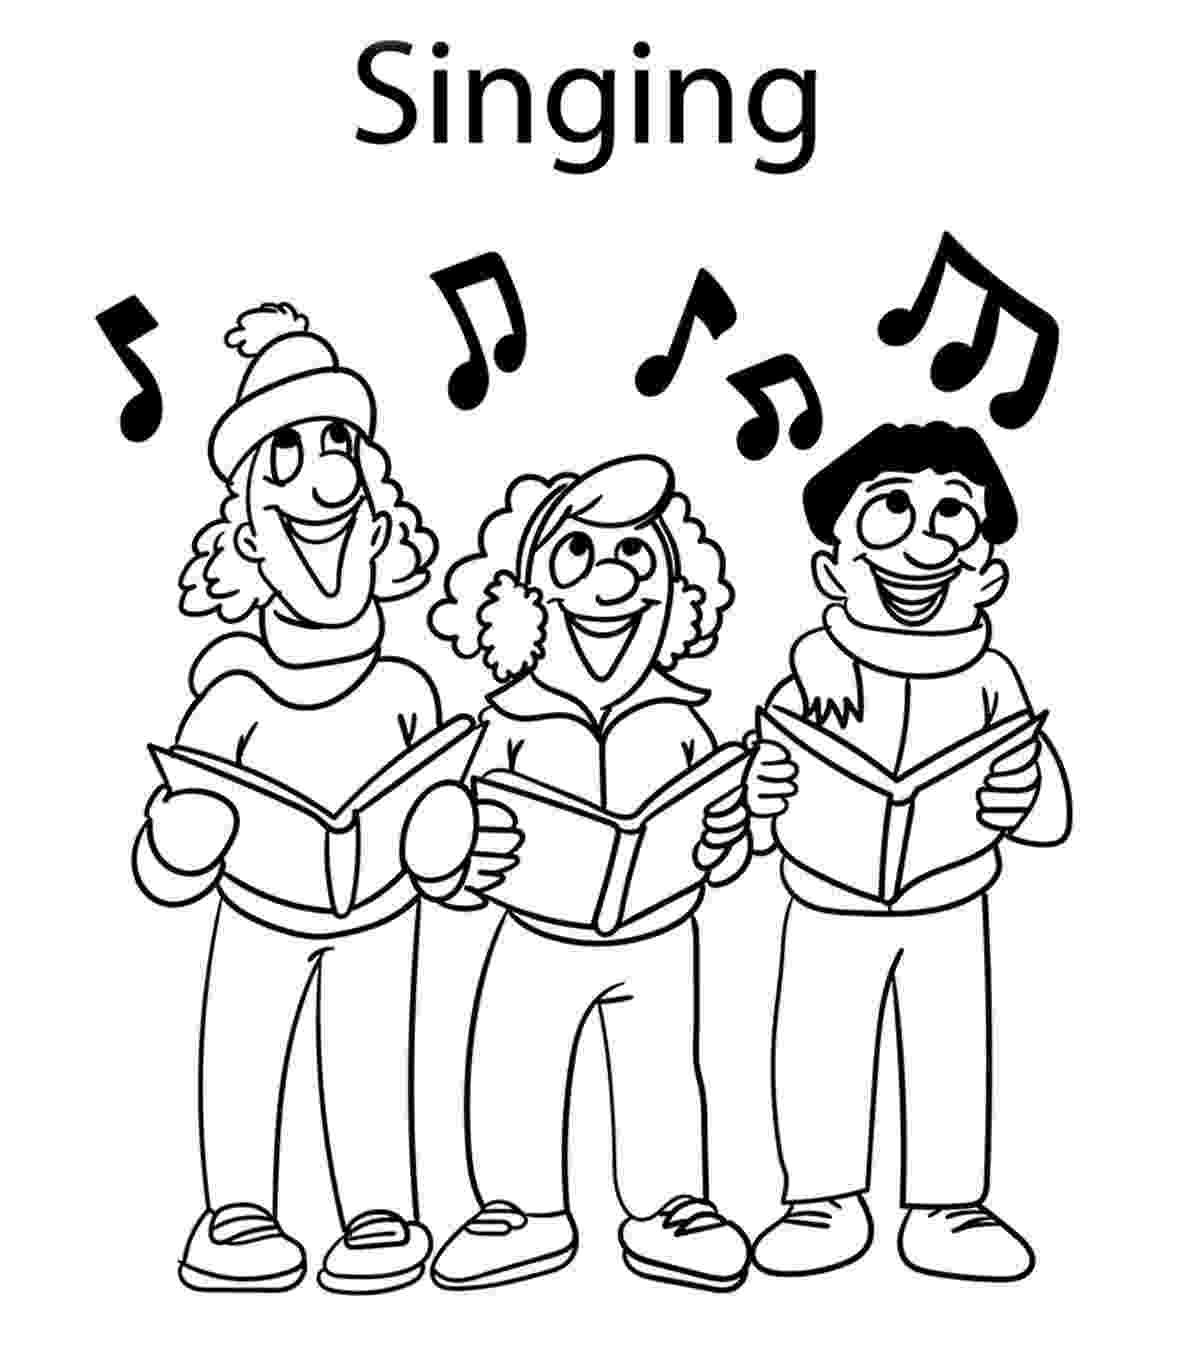 music coloring sheets music coloring pages coloring pages to download and print sheets coloring music